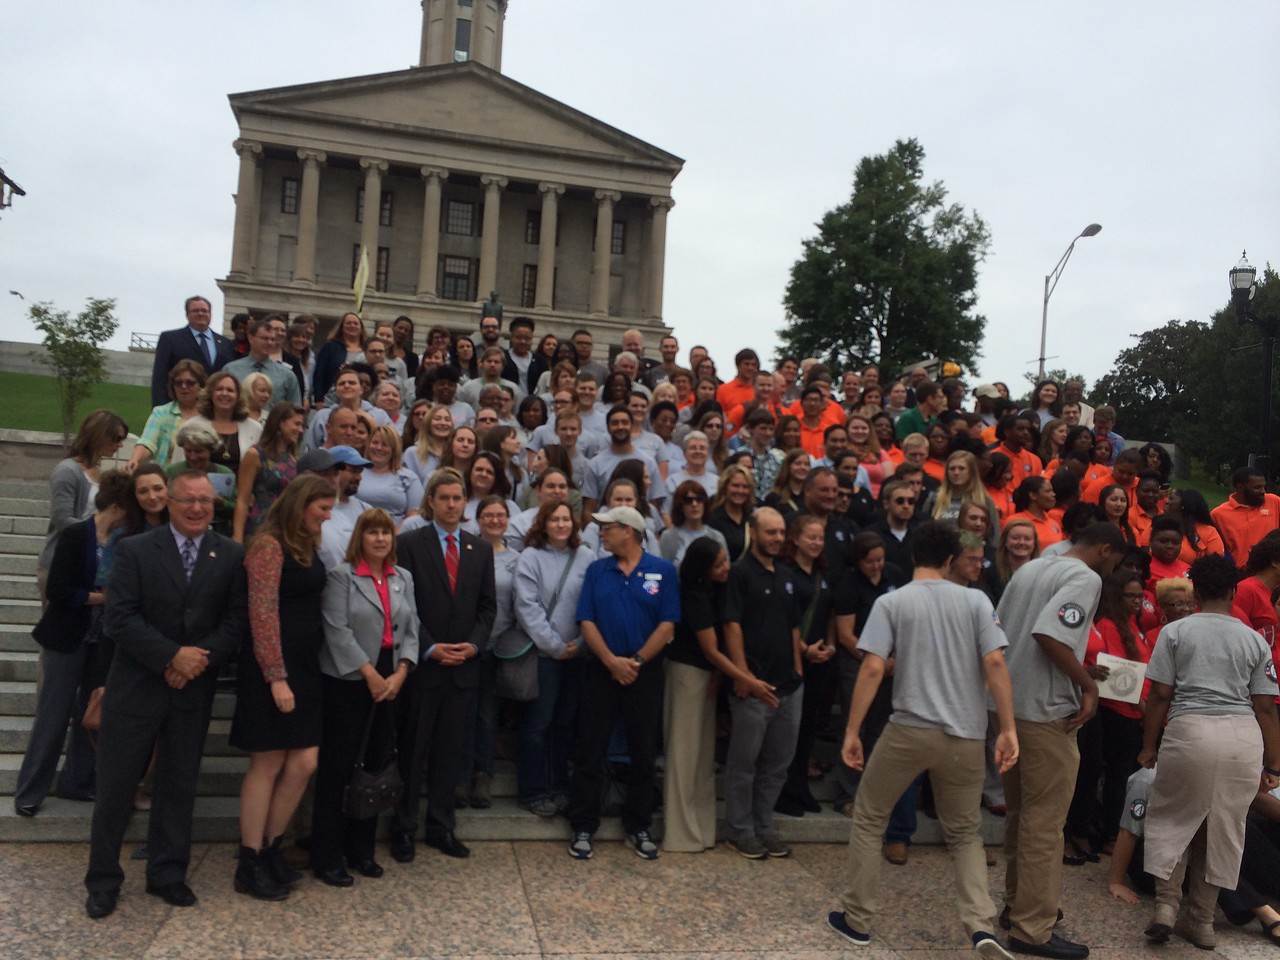 More than 200 AmeriCorps members alumni and supporters participated in Volunteer Tennessee's 20th Anniversary Celebration. Corporation for National and Community Service Photo.